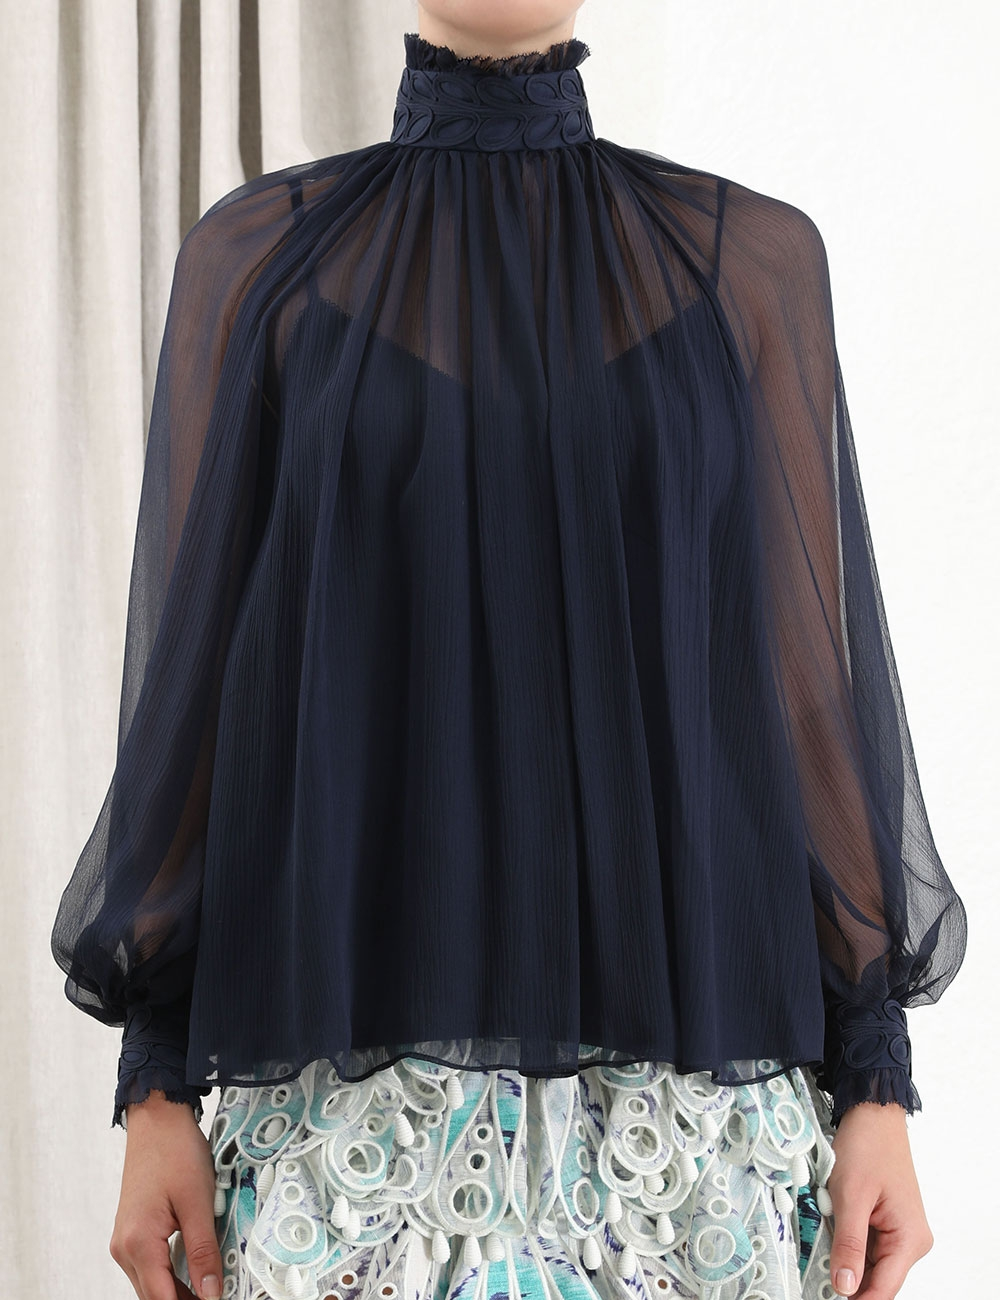 Glassy Rouleaux Swing Blouse